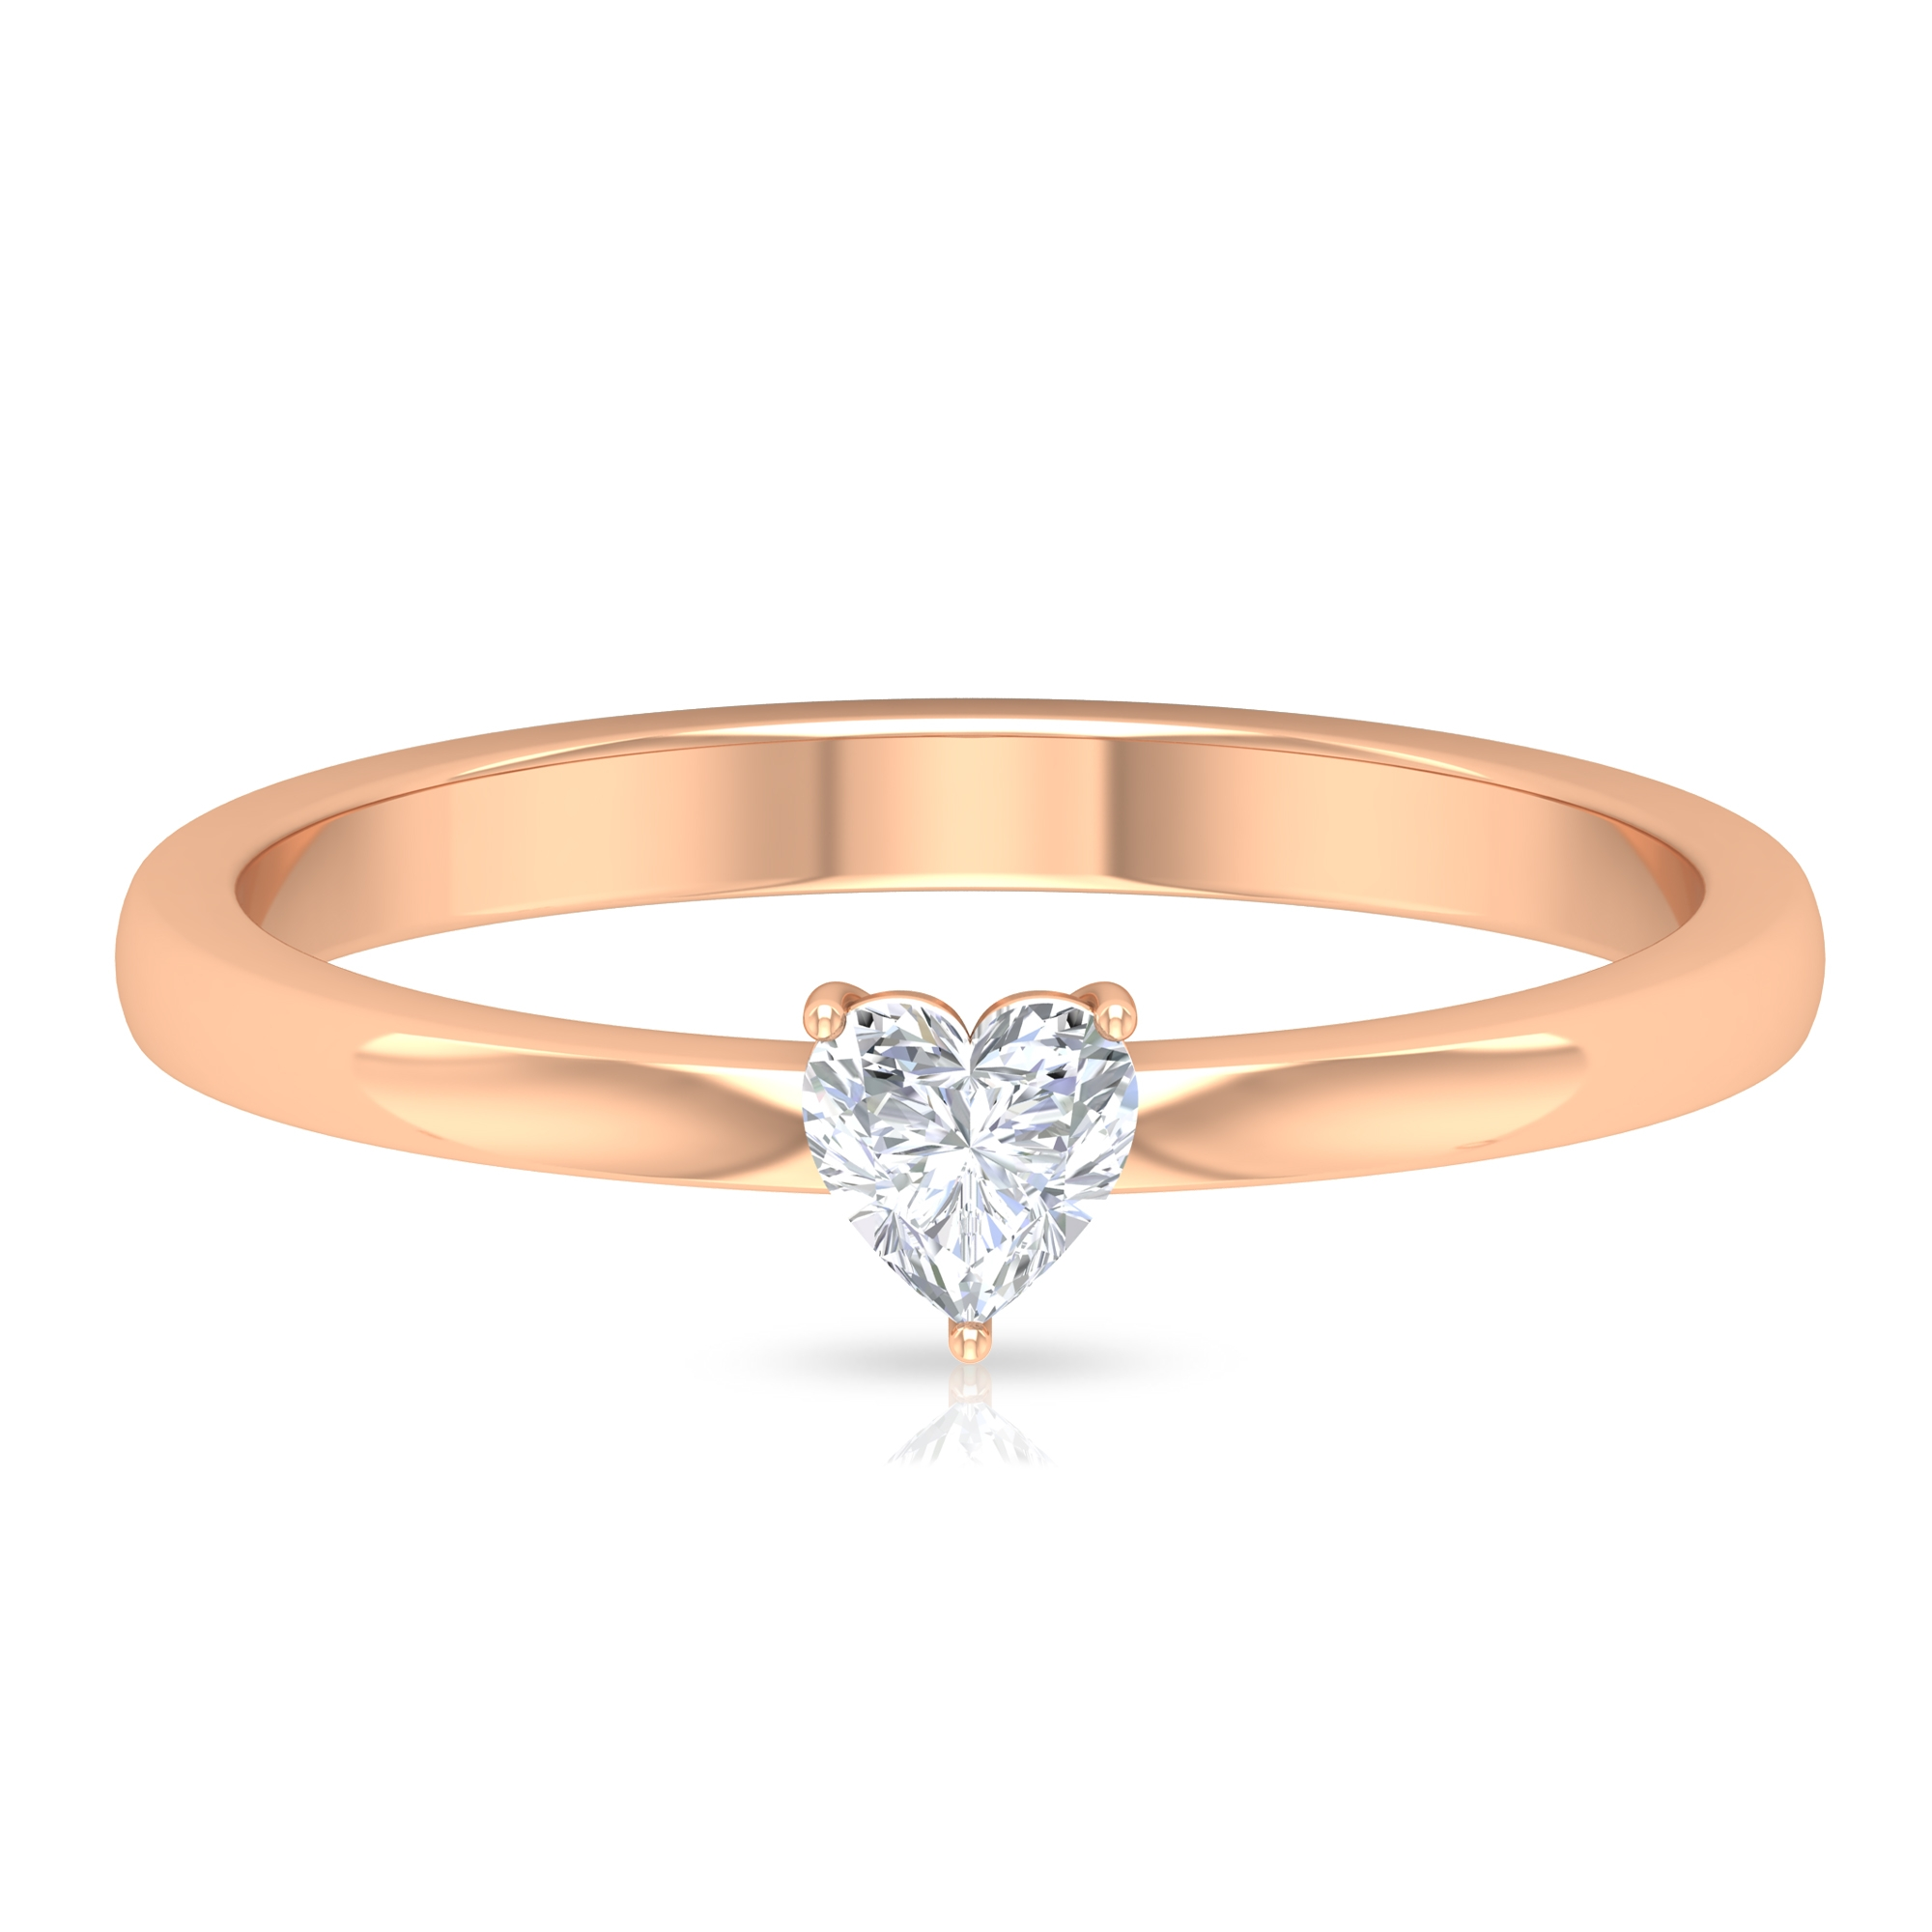 4 MM Heart Diamond Solitaire Ring in Three Prong Setting